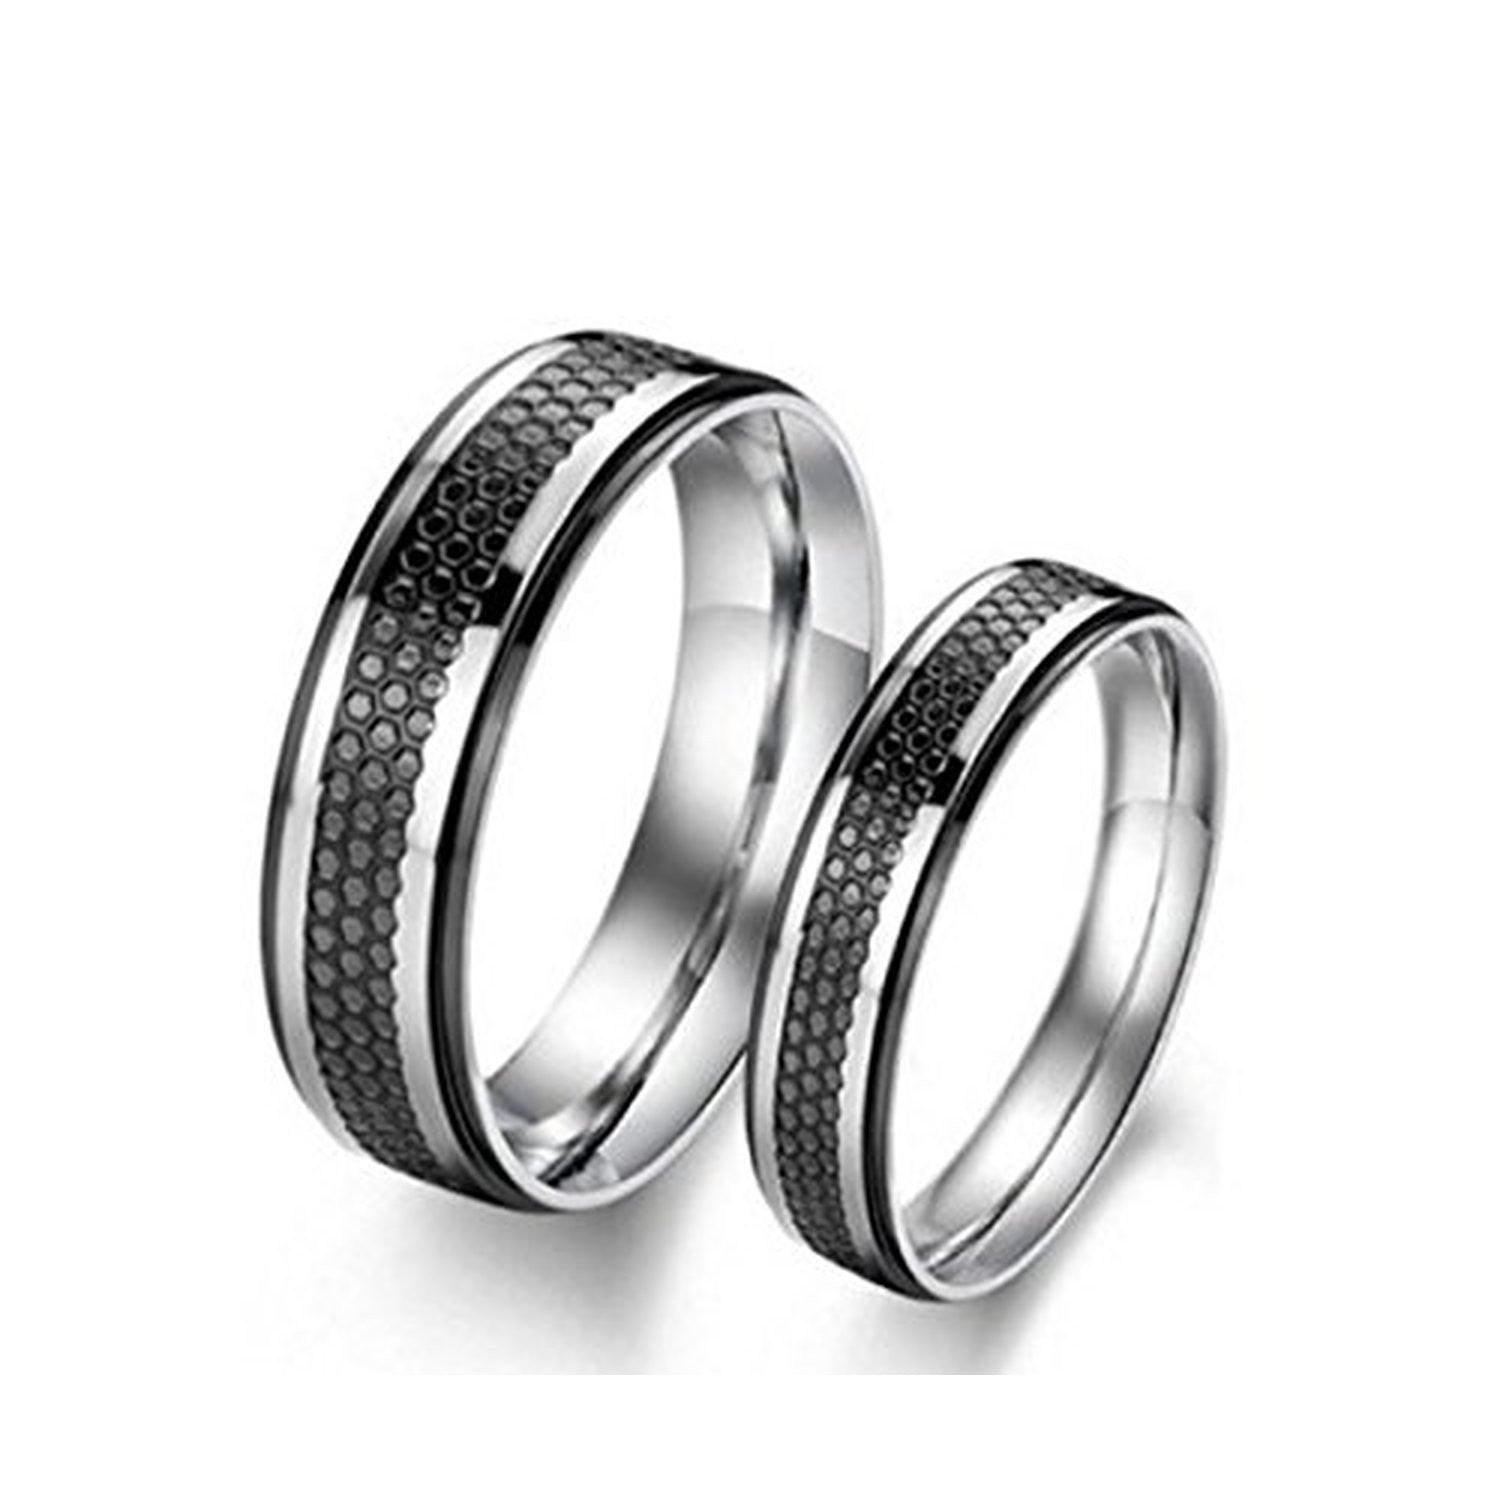 jewelry free band shipping rings watches men white overstock s on black steel ring greek product laser mens orders stainless over key etched